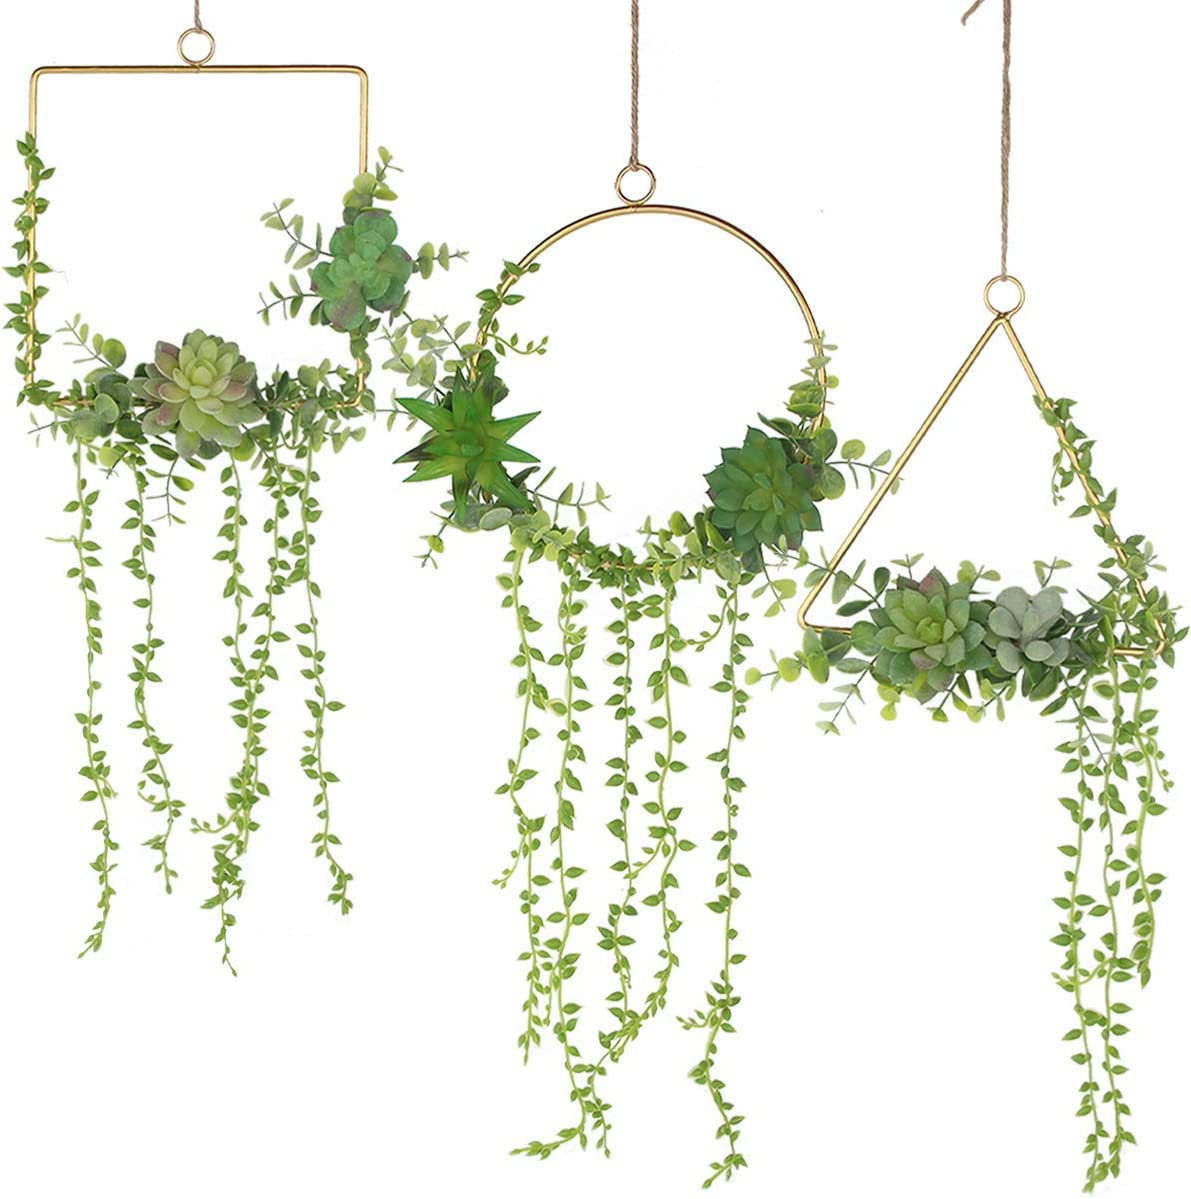 Z-YAO Floral Hoop Wreath Set of 3 Artificial Fake Succulent Plant Wall Decor Wreaths for Wall Hanging Succulents Decor Nursery Baby Shower Party Backdrop Decoration